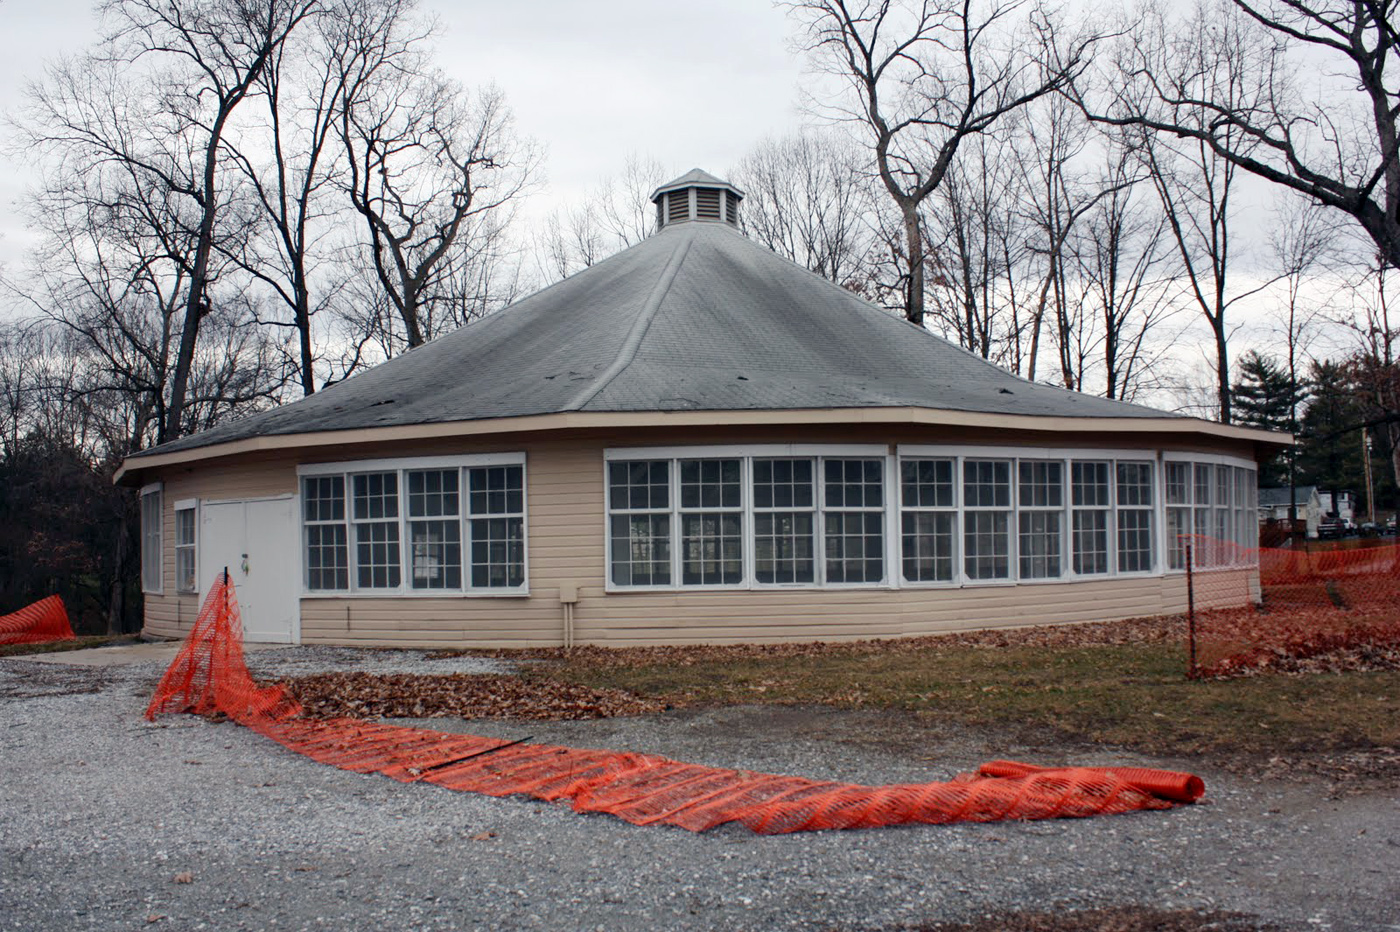 Brookeside-park-condemned-1939-carousel-building